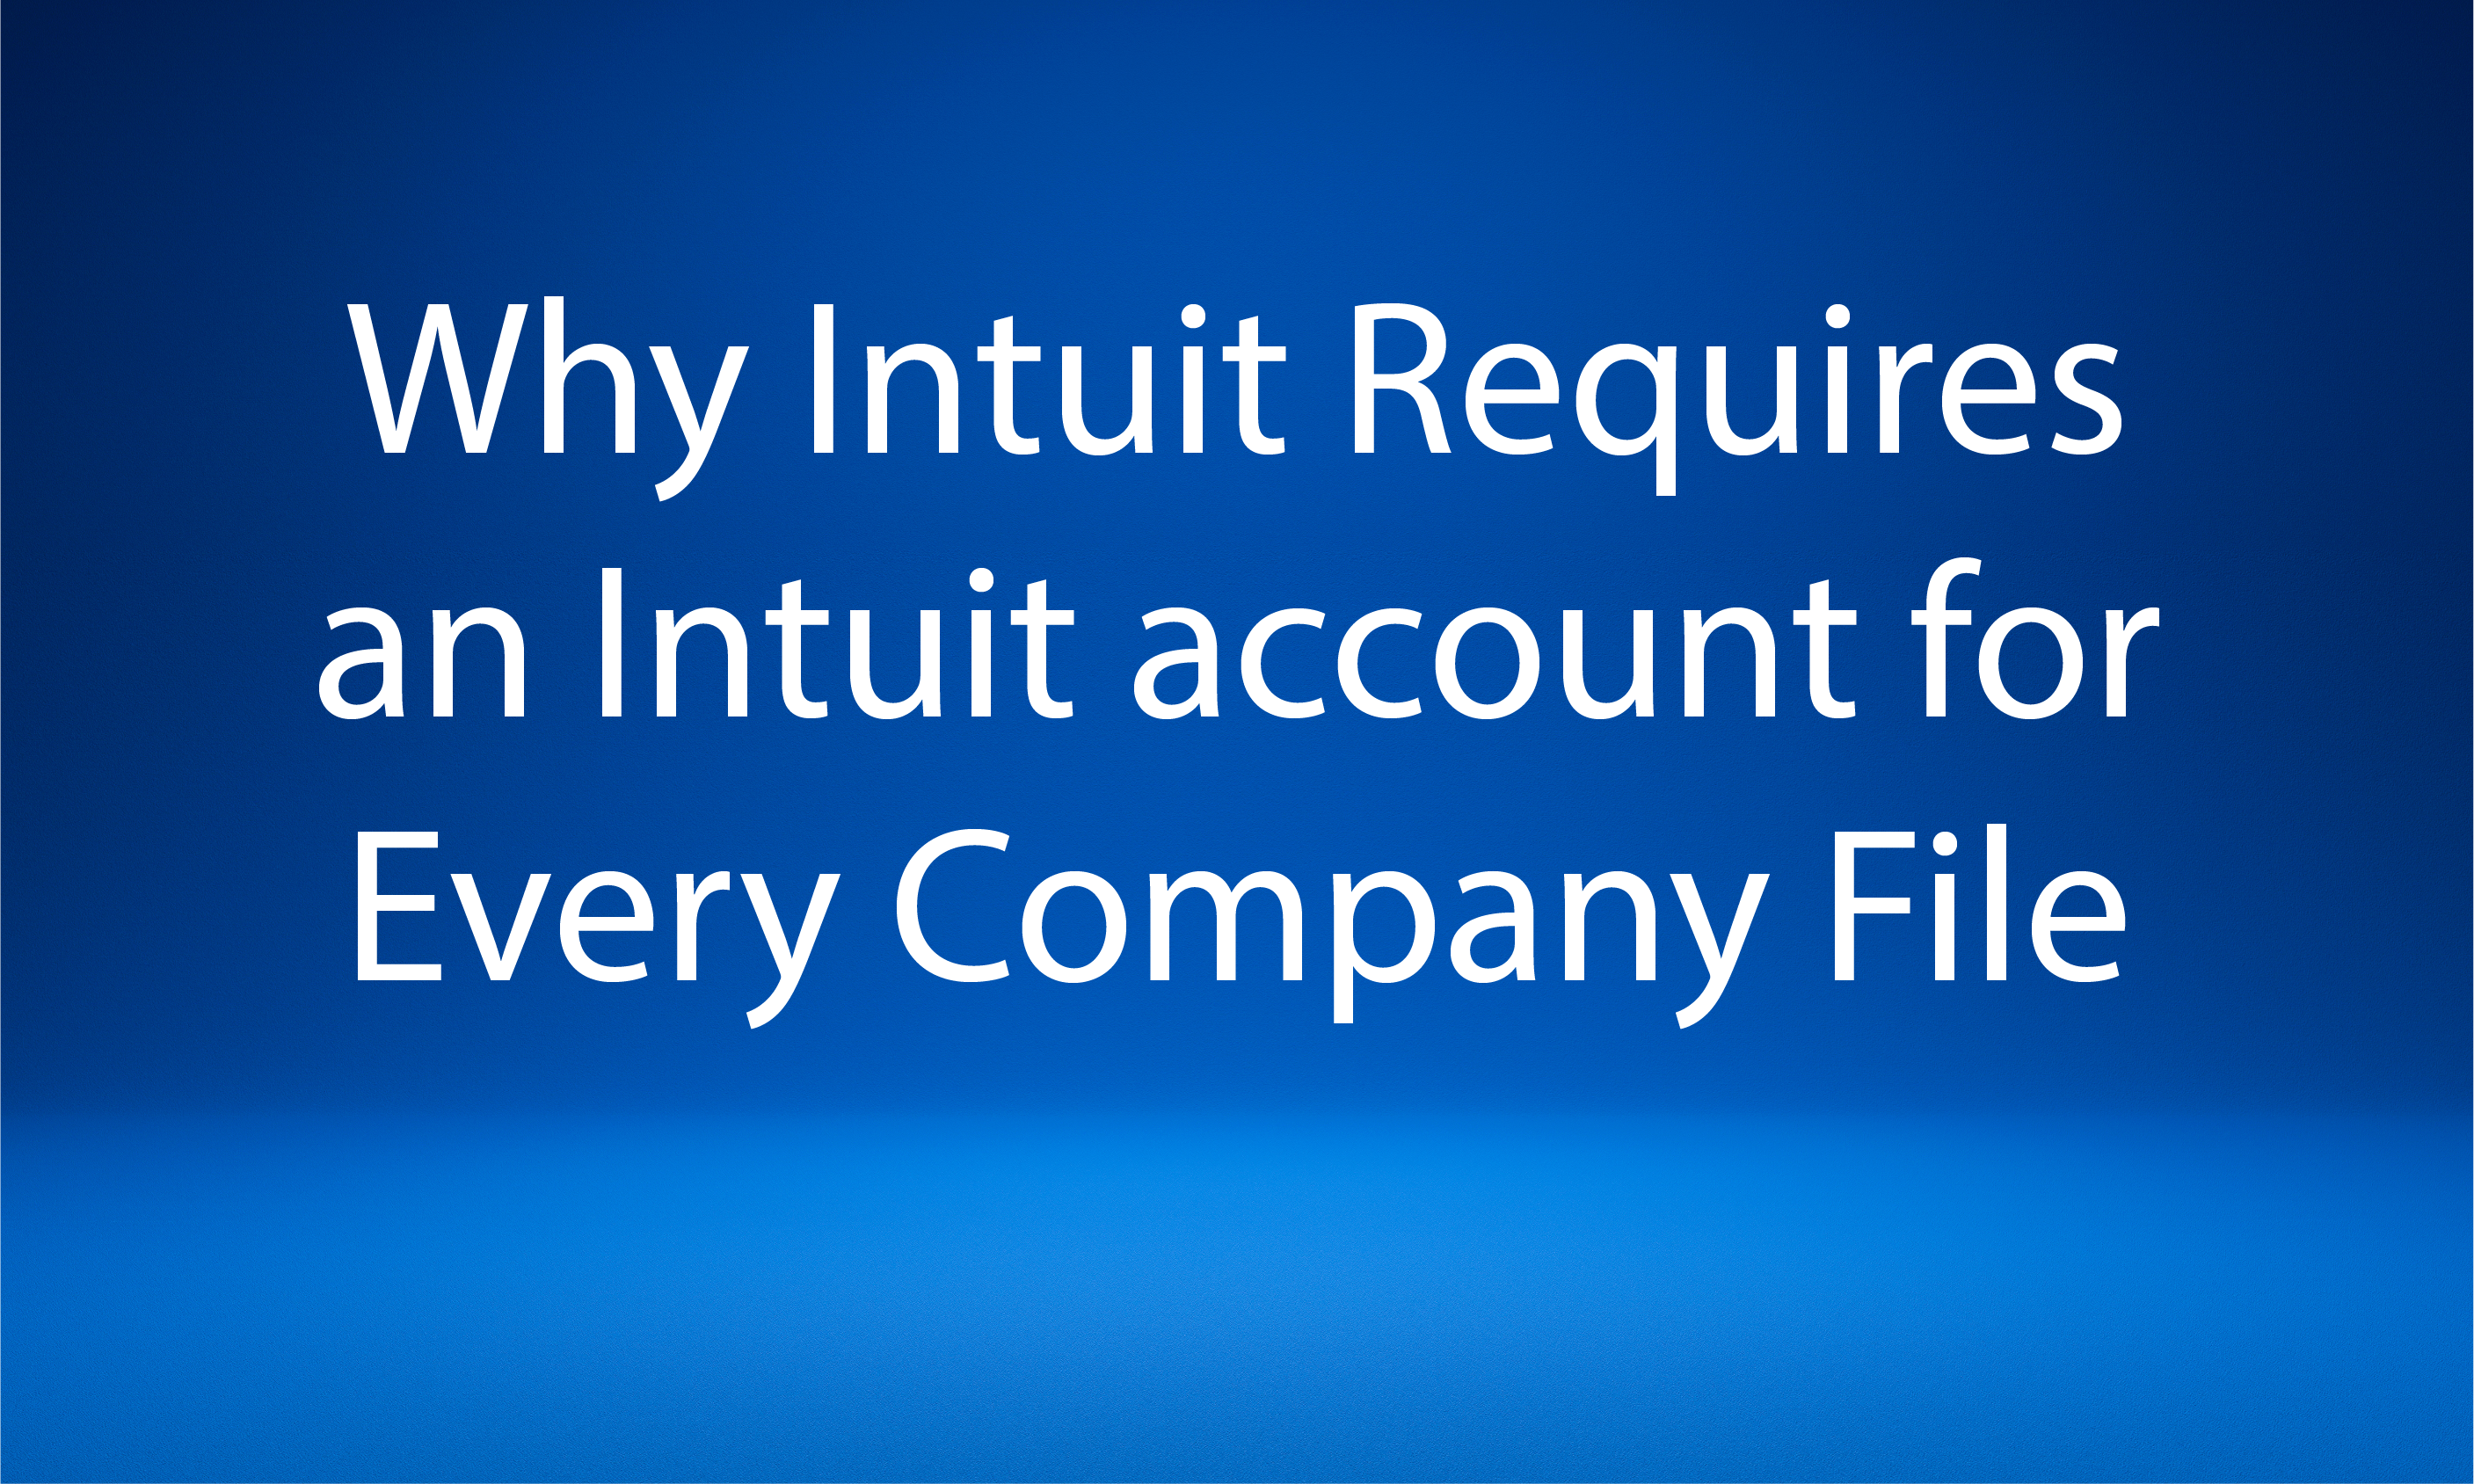 Why Intuit Requires An Intuit Account For Every Company File